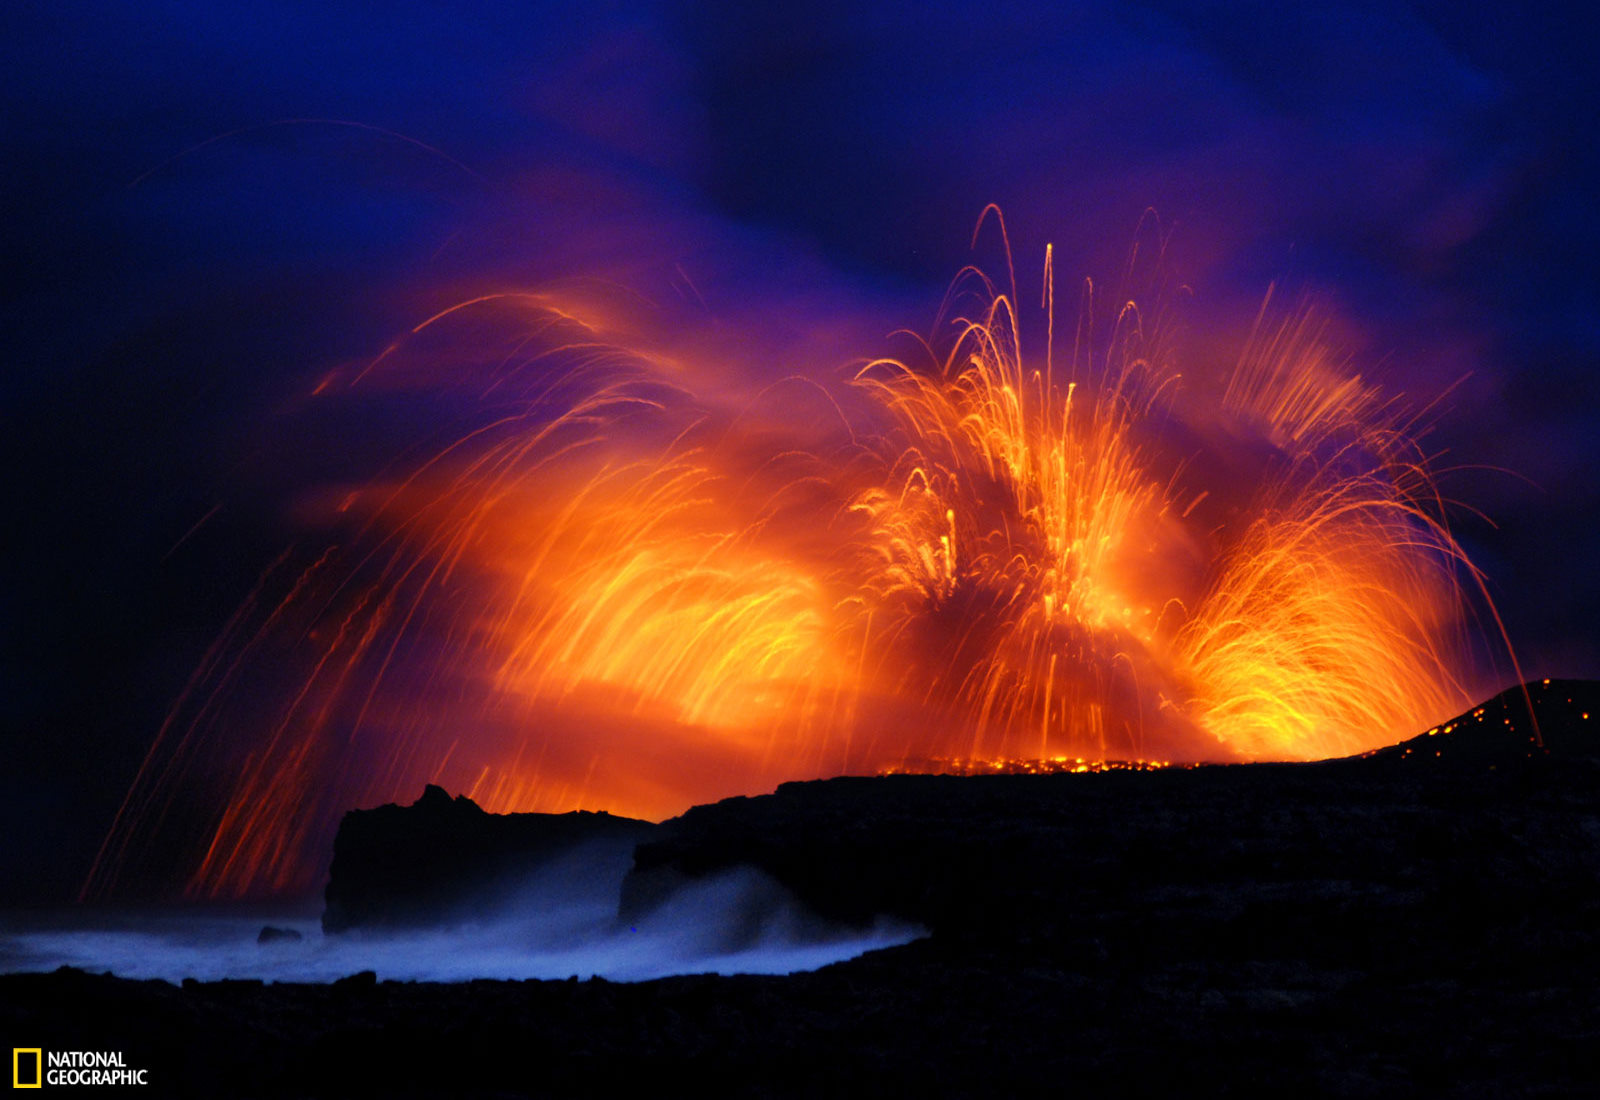 Volcano Wallpaper and Background Image  1600x1100  ID:96826